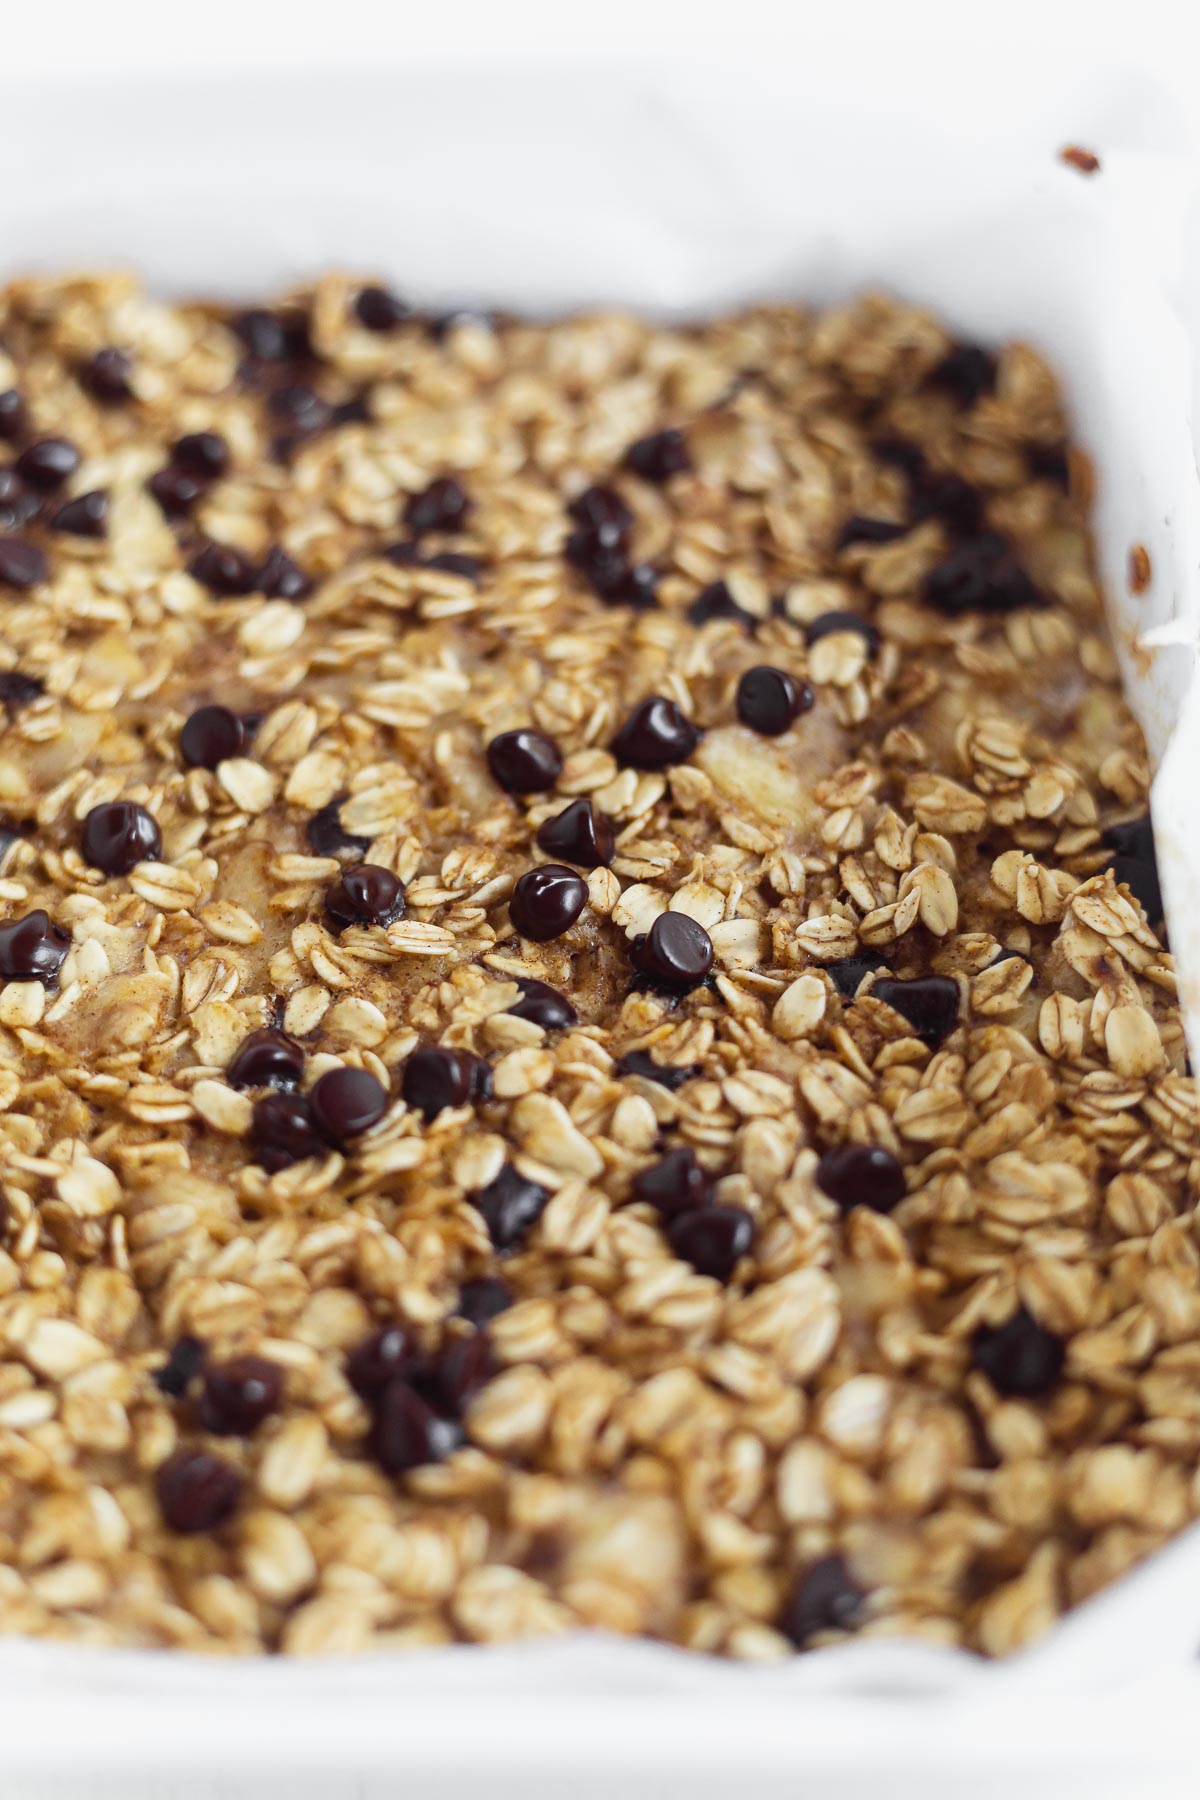 baked oatmeal with banana and chocolate chips in a white 8x8 inch baking dish